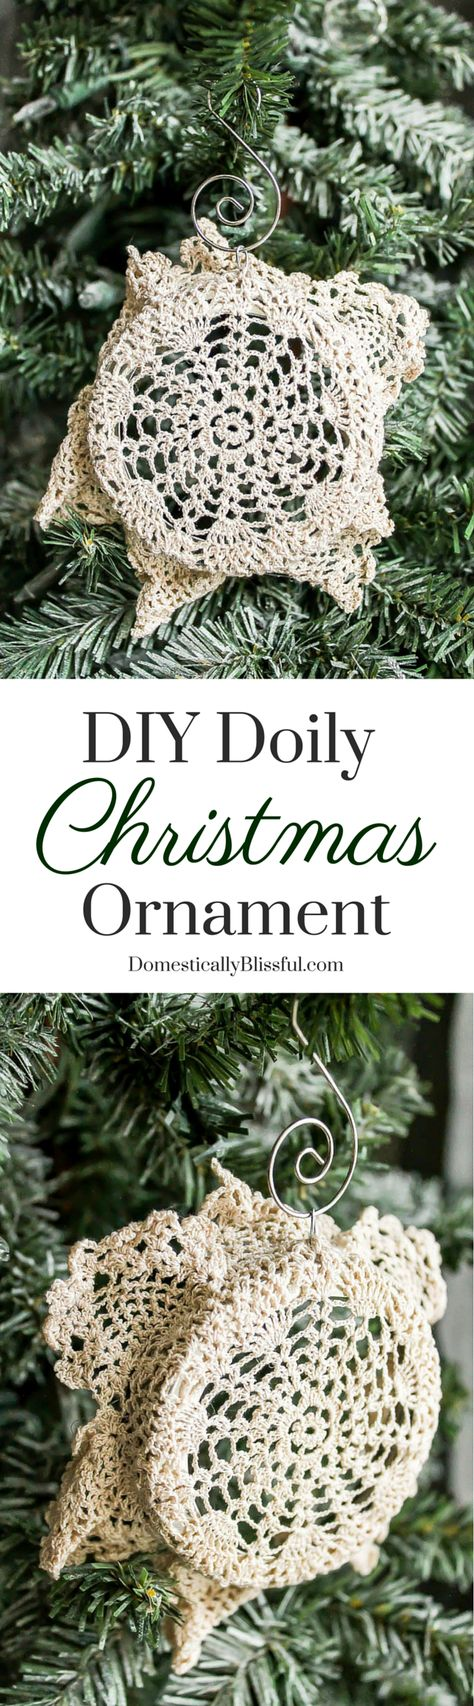 This DIY Doily Christmas Ornament is a beautiful way to repurpose & recycle items to create a beautiful new Christmas ornament filled with memories.